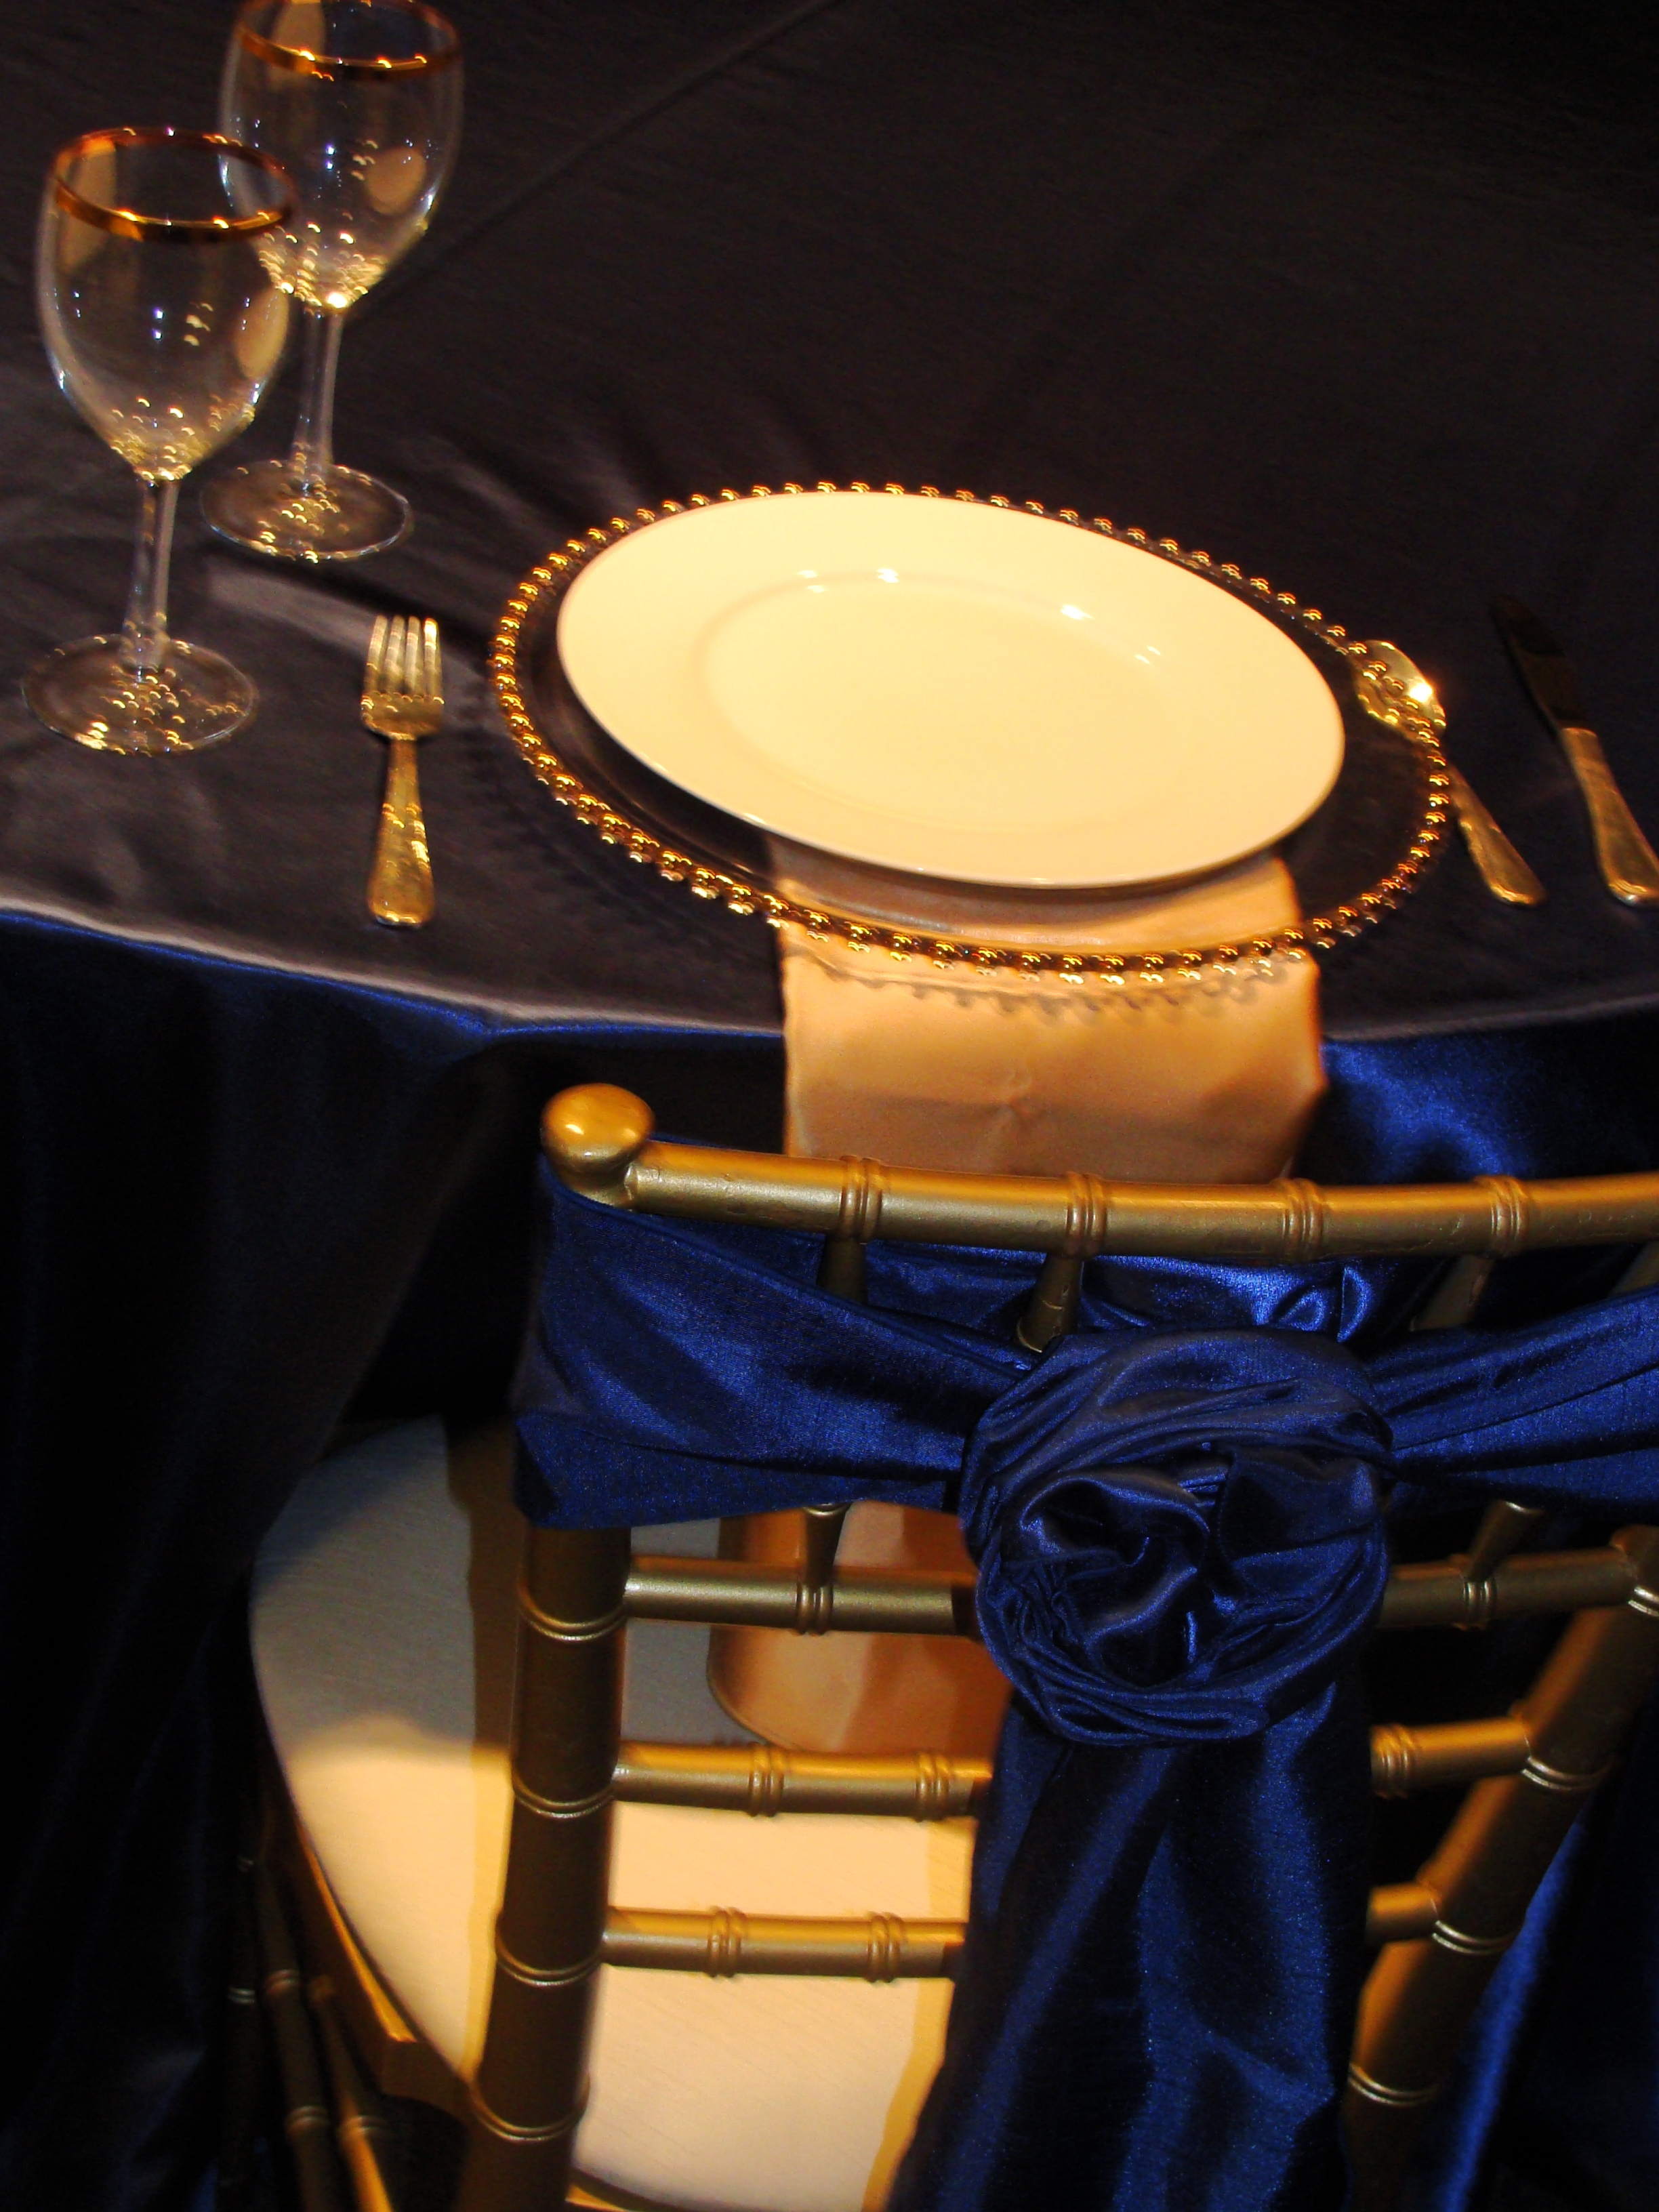 Blue And Gold Table Setting Table Setting Design In Blue And Gold With Draped Napkin And Rose